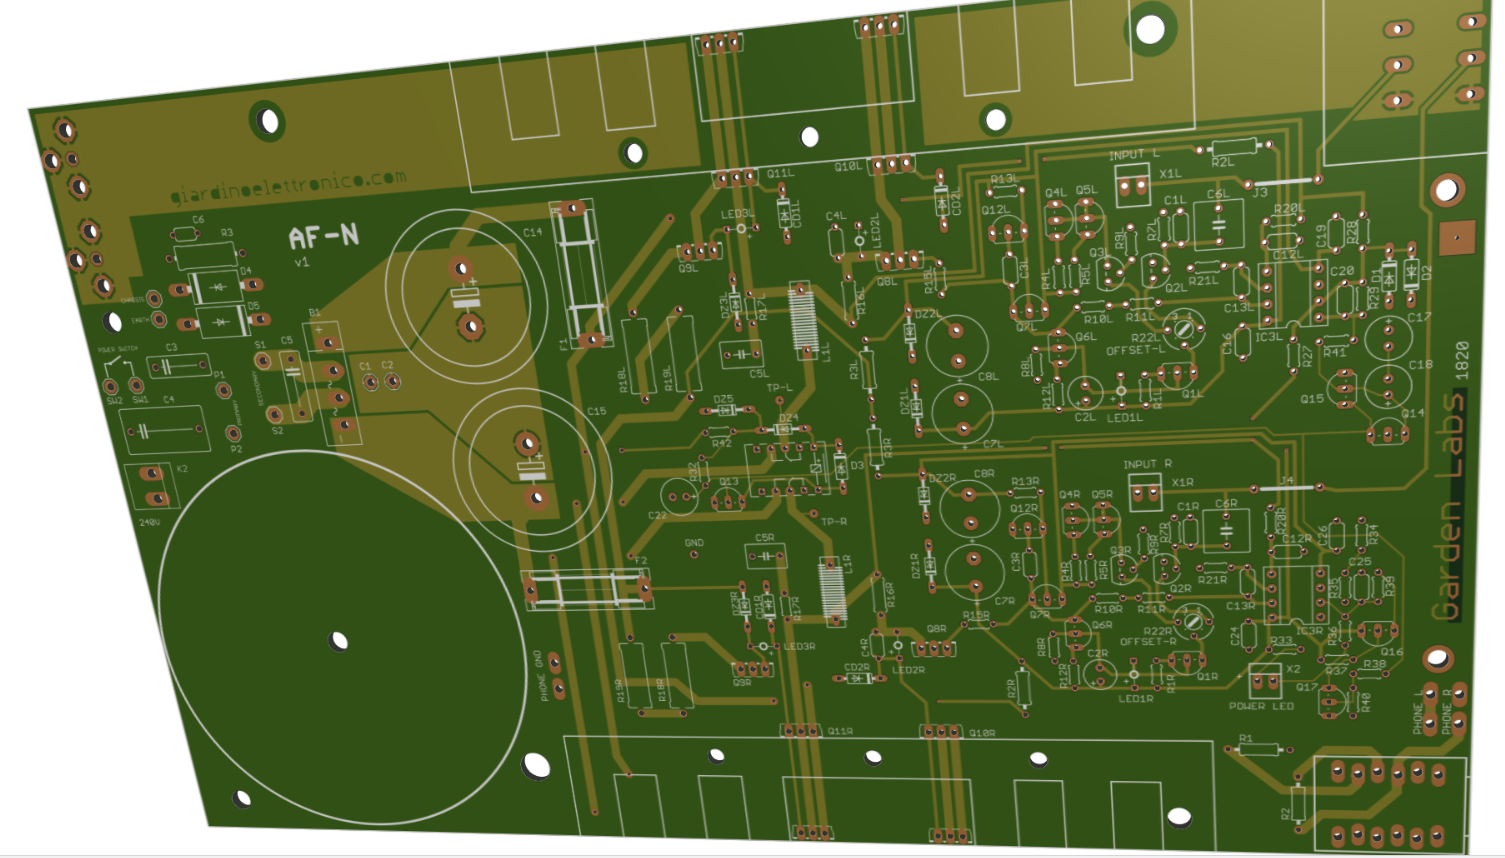 AF-N: group buy PCB - Pagina 2 41577281825_950c5a0465_o_d